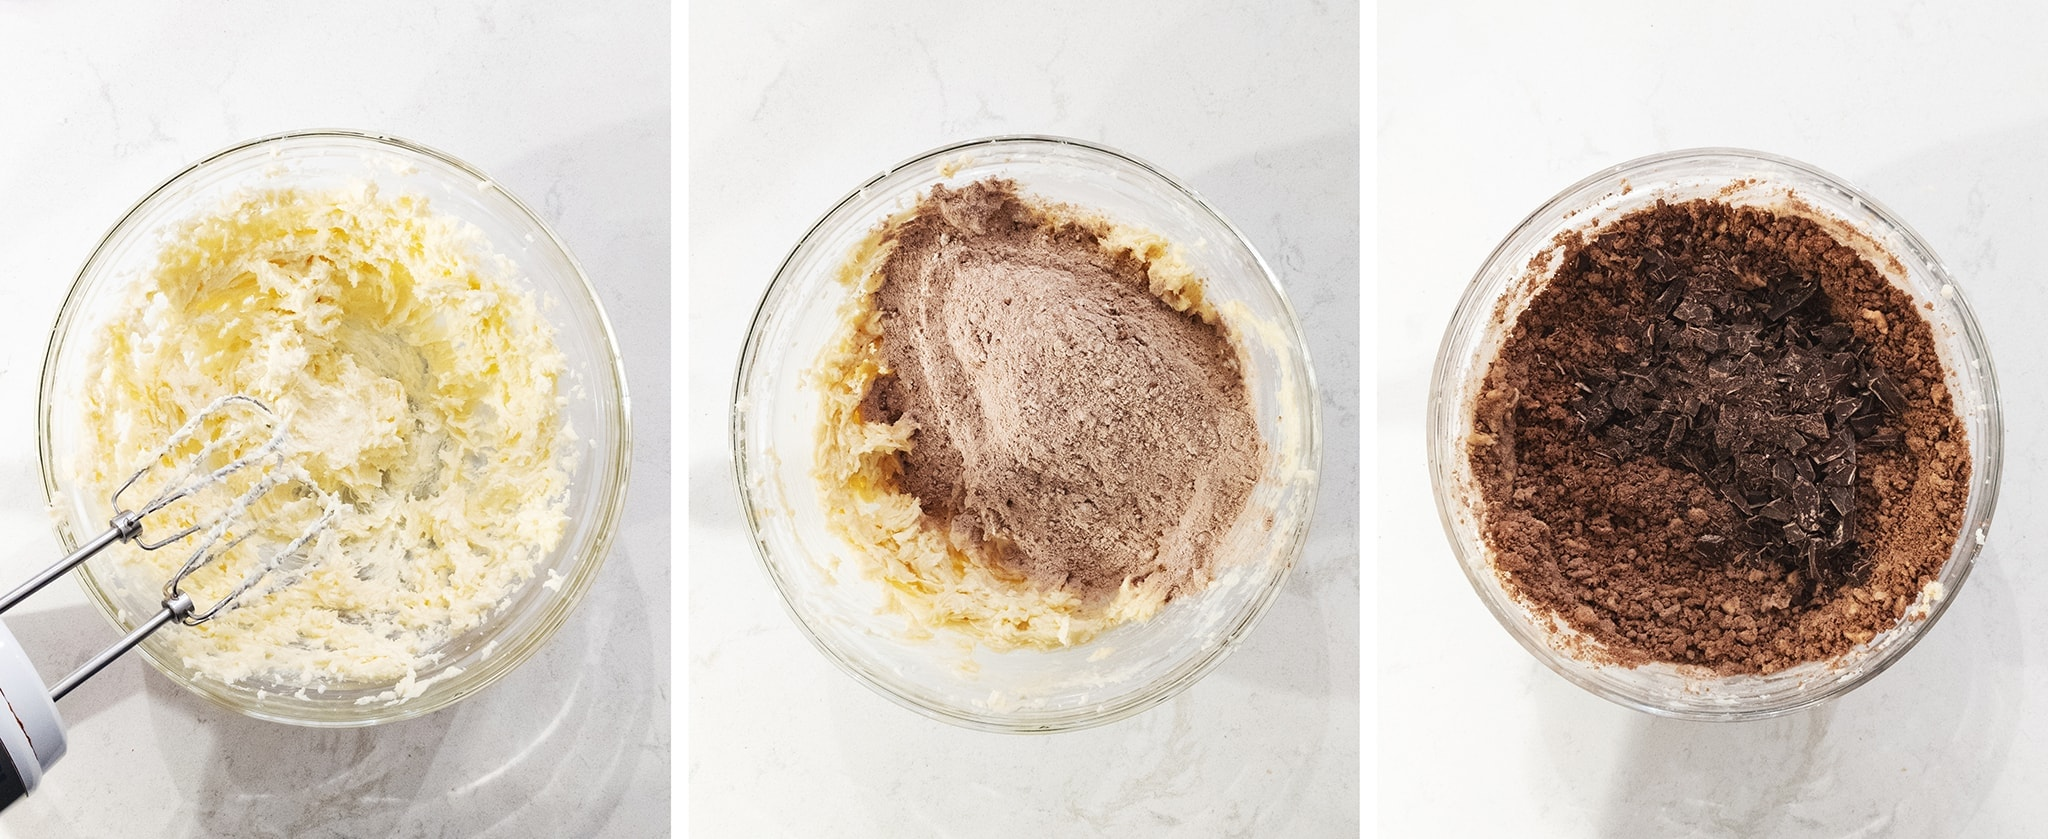 Mixing chocolate cookie dough in a bowl